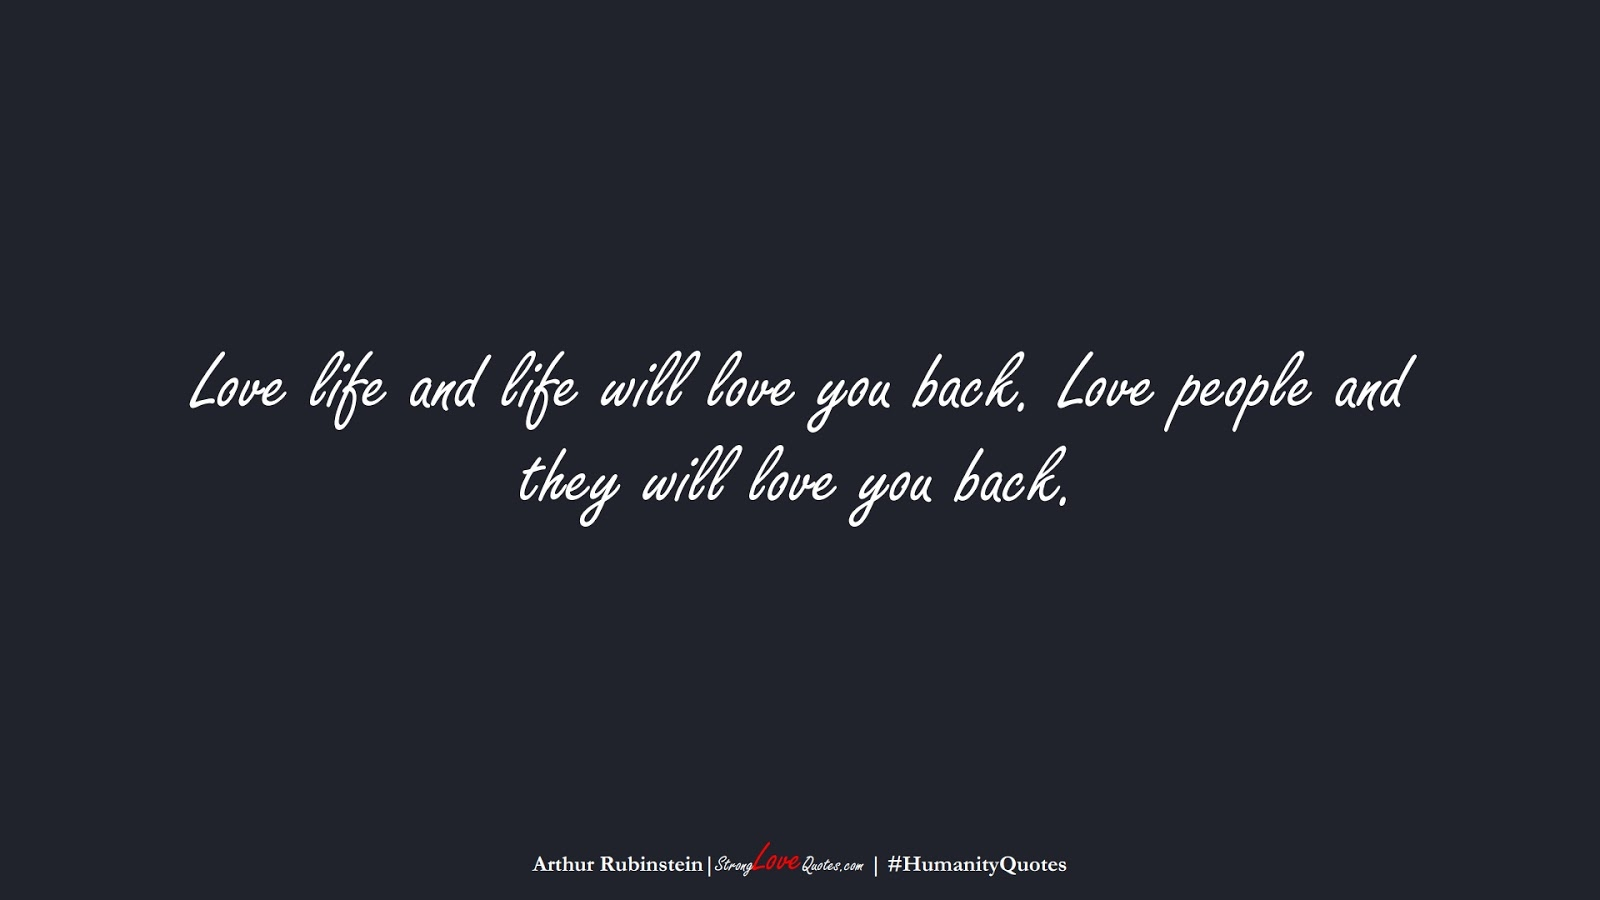 Love life and life will love you back. Love people and they will love you back. (Arthur Rubinstein);  #HumanityQuotes